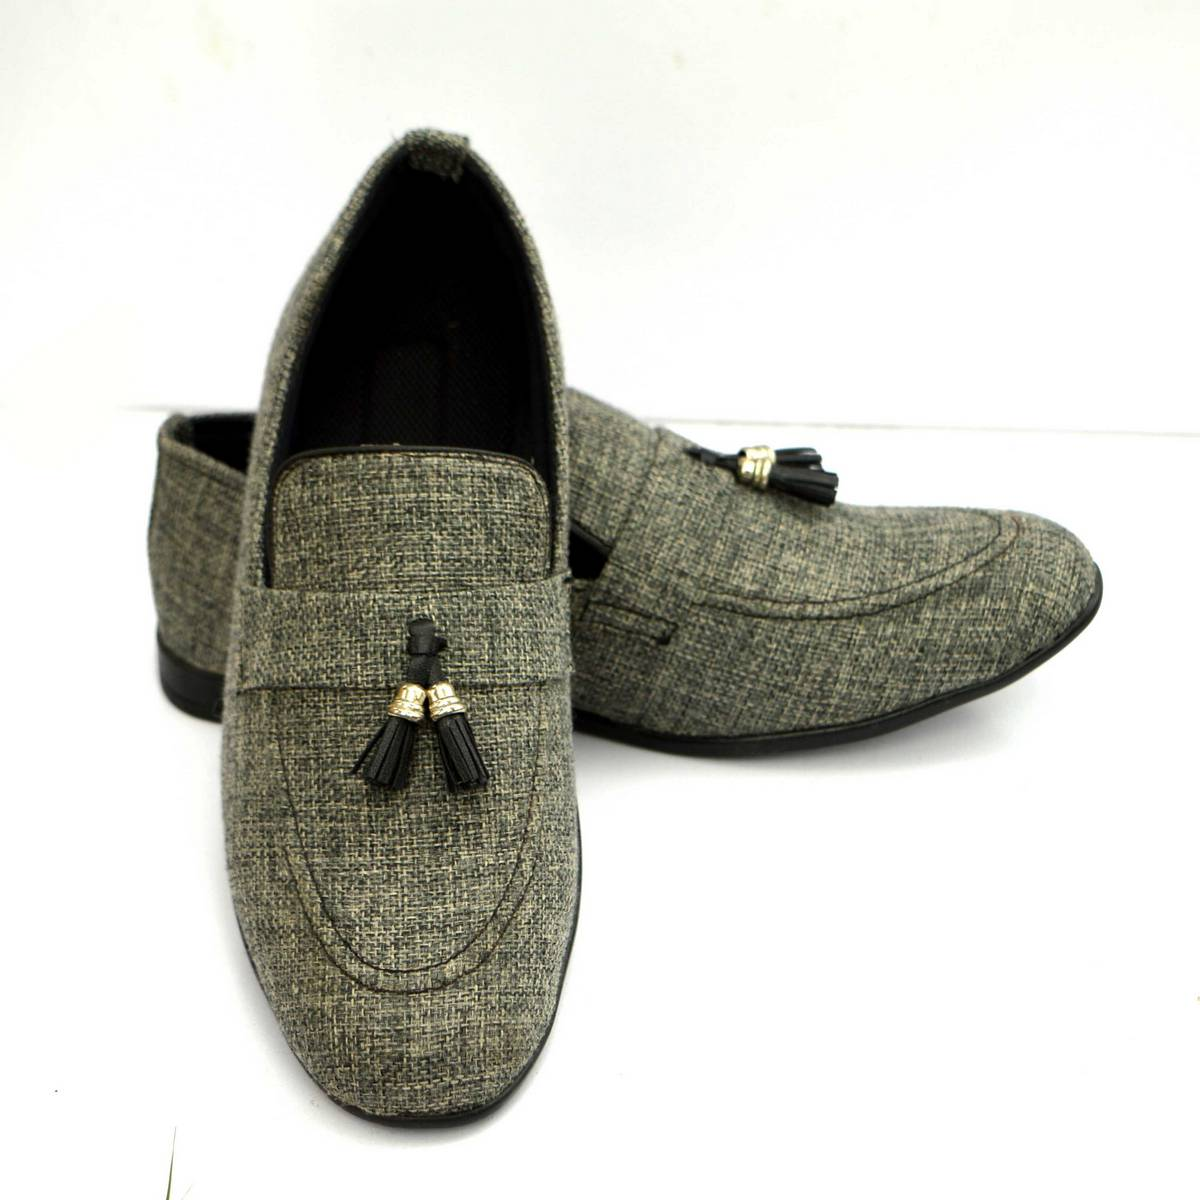 Party & Wedding Pump loafers Casual shoes for Men